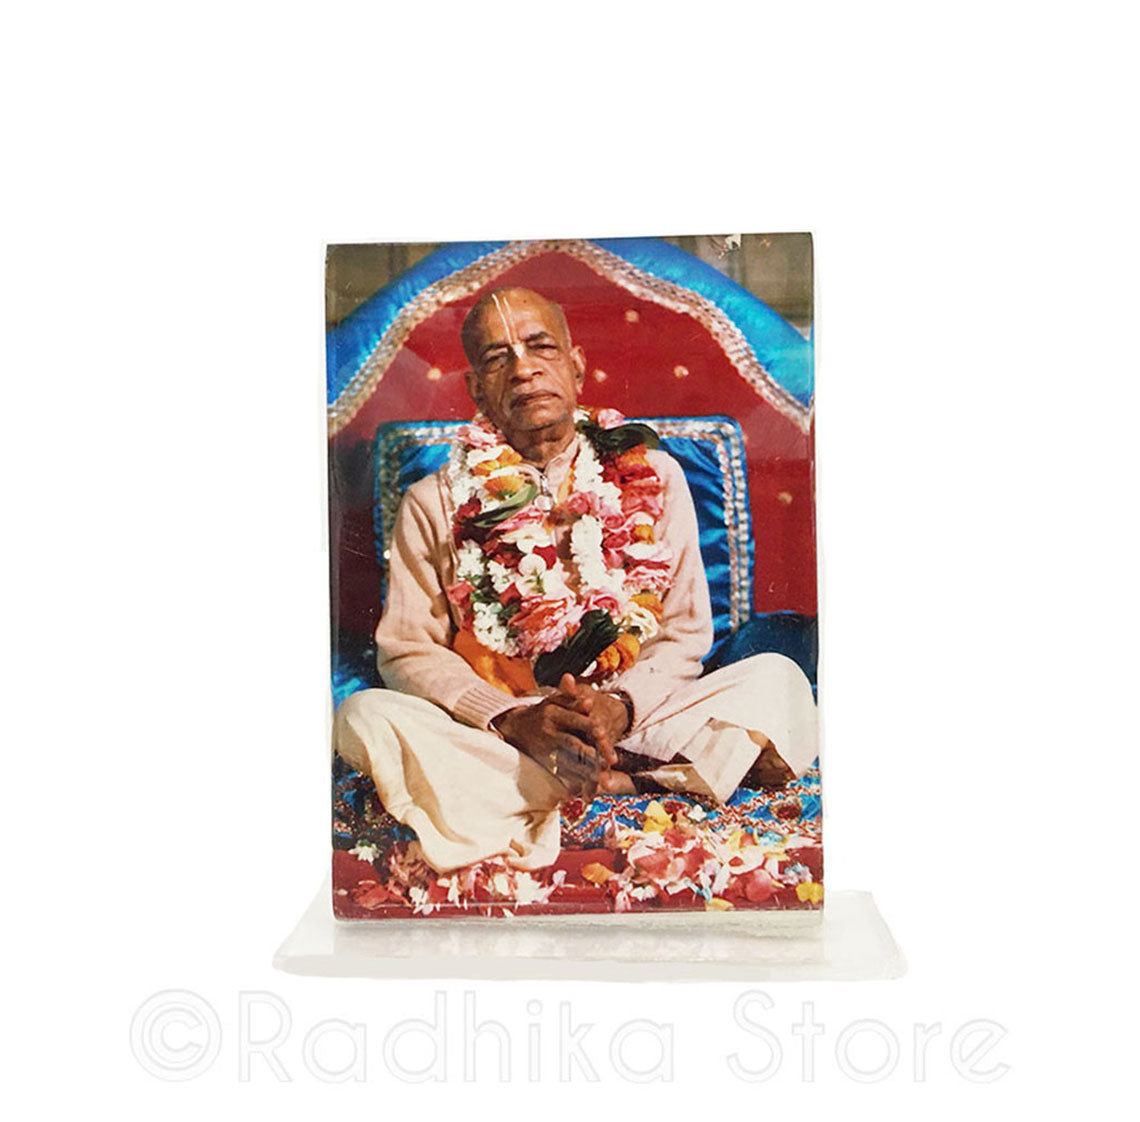 Srila Prabhupada Folded Hands On Red and Blue Viasasana Acrylic Picture-